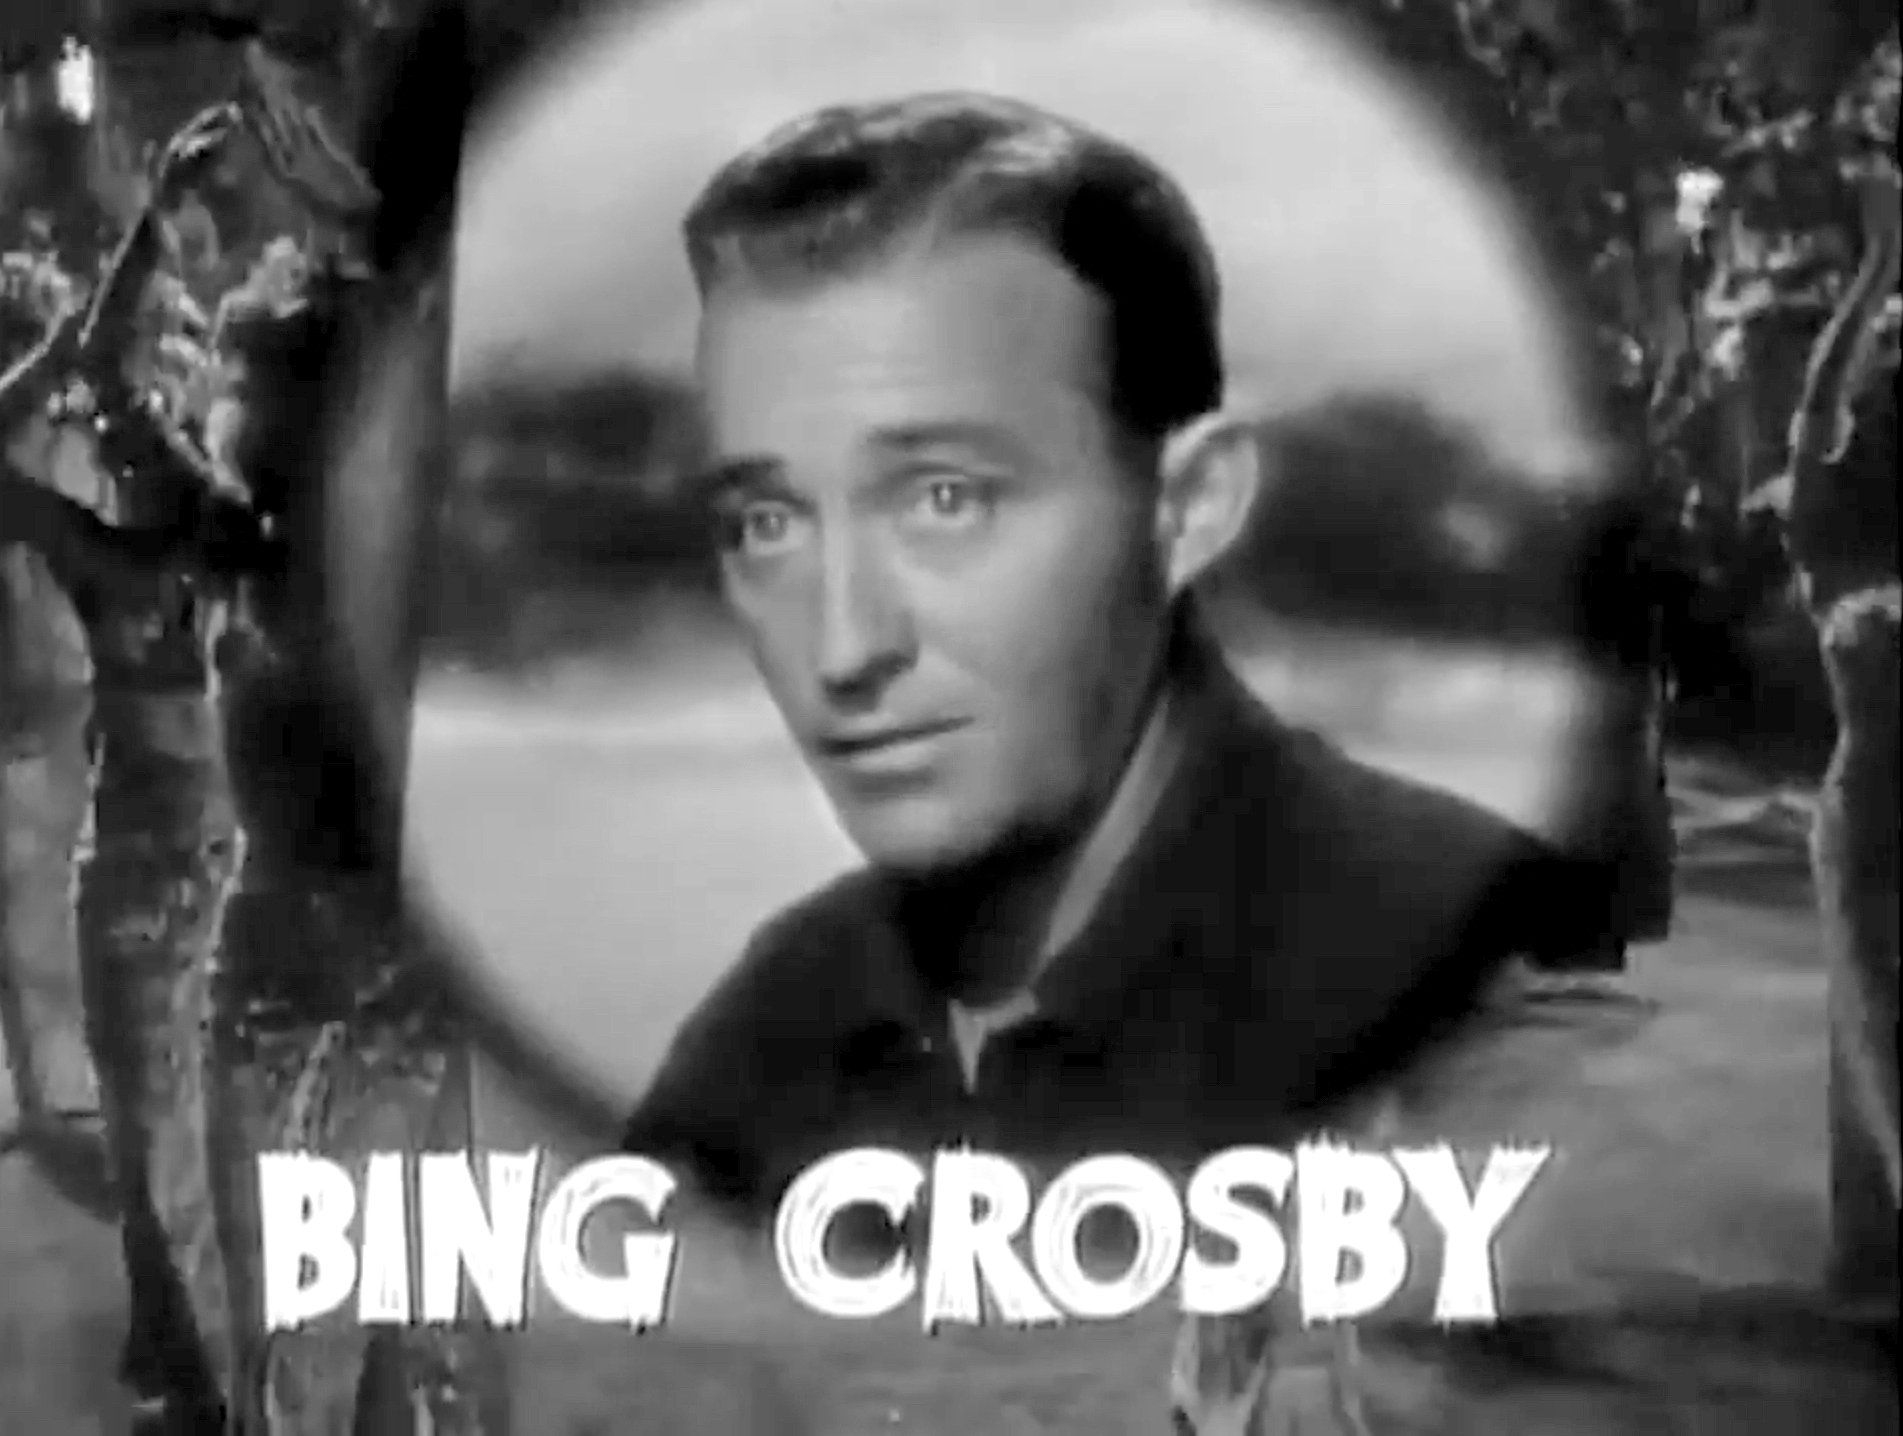 http://commons.wikipedia.org/wiki/File:Bing_Crosby_in_Road_to_Singapore_trailer.jpg